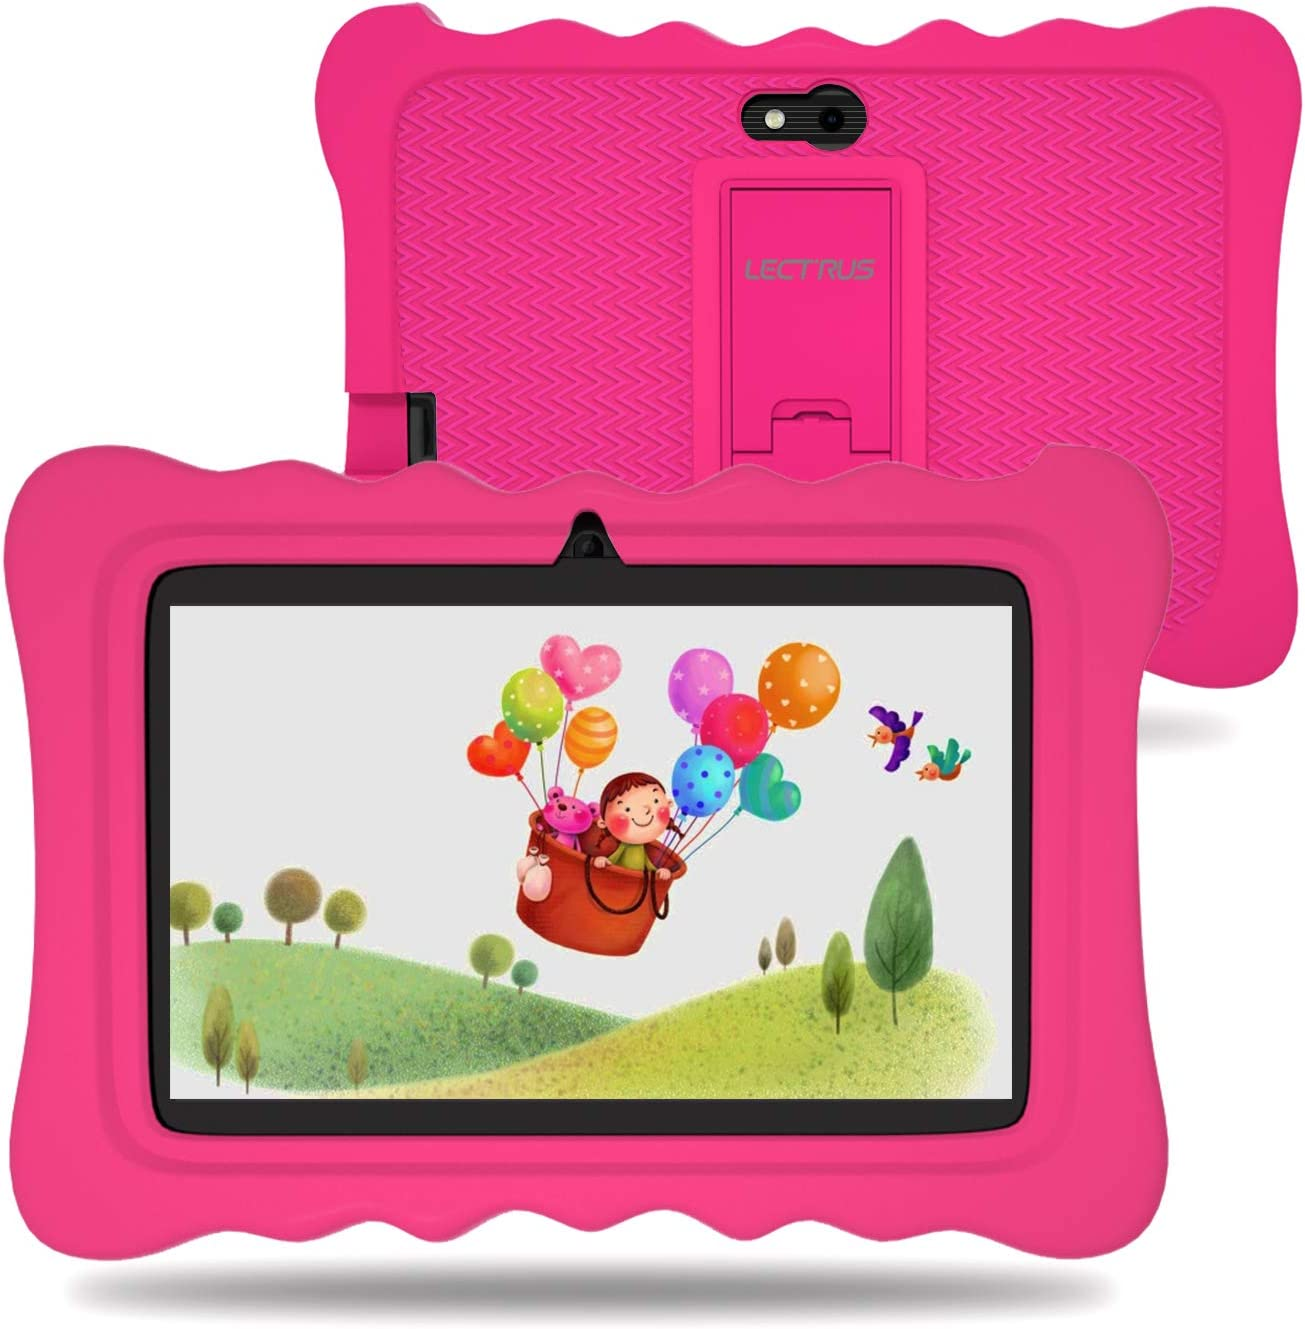 Sale special price Lectrus Tablet 7 inch Android Certified Pie GMS 9.0 latest 2GB+16GB